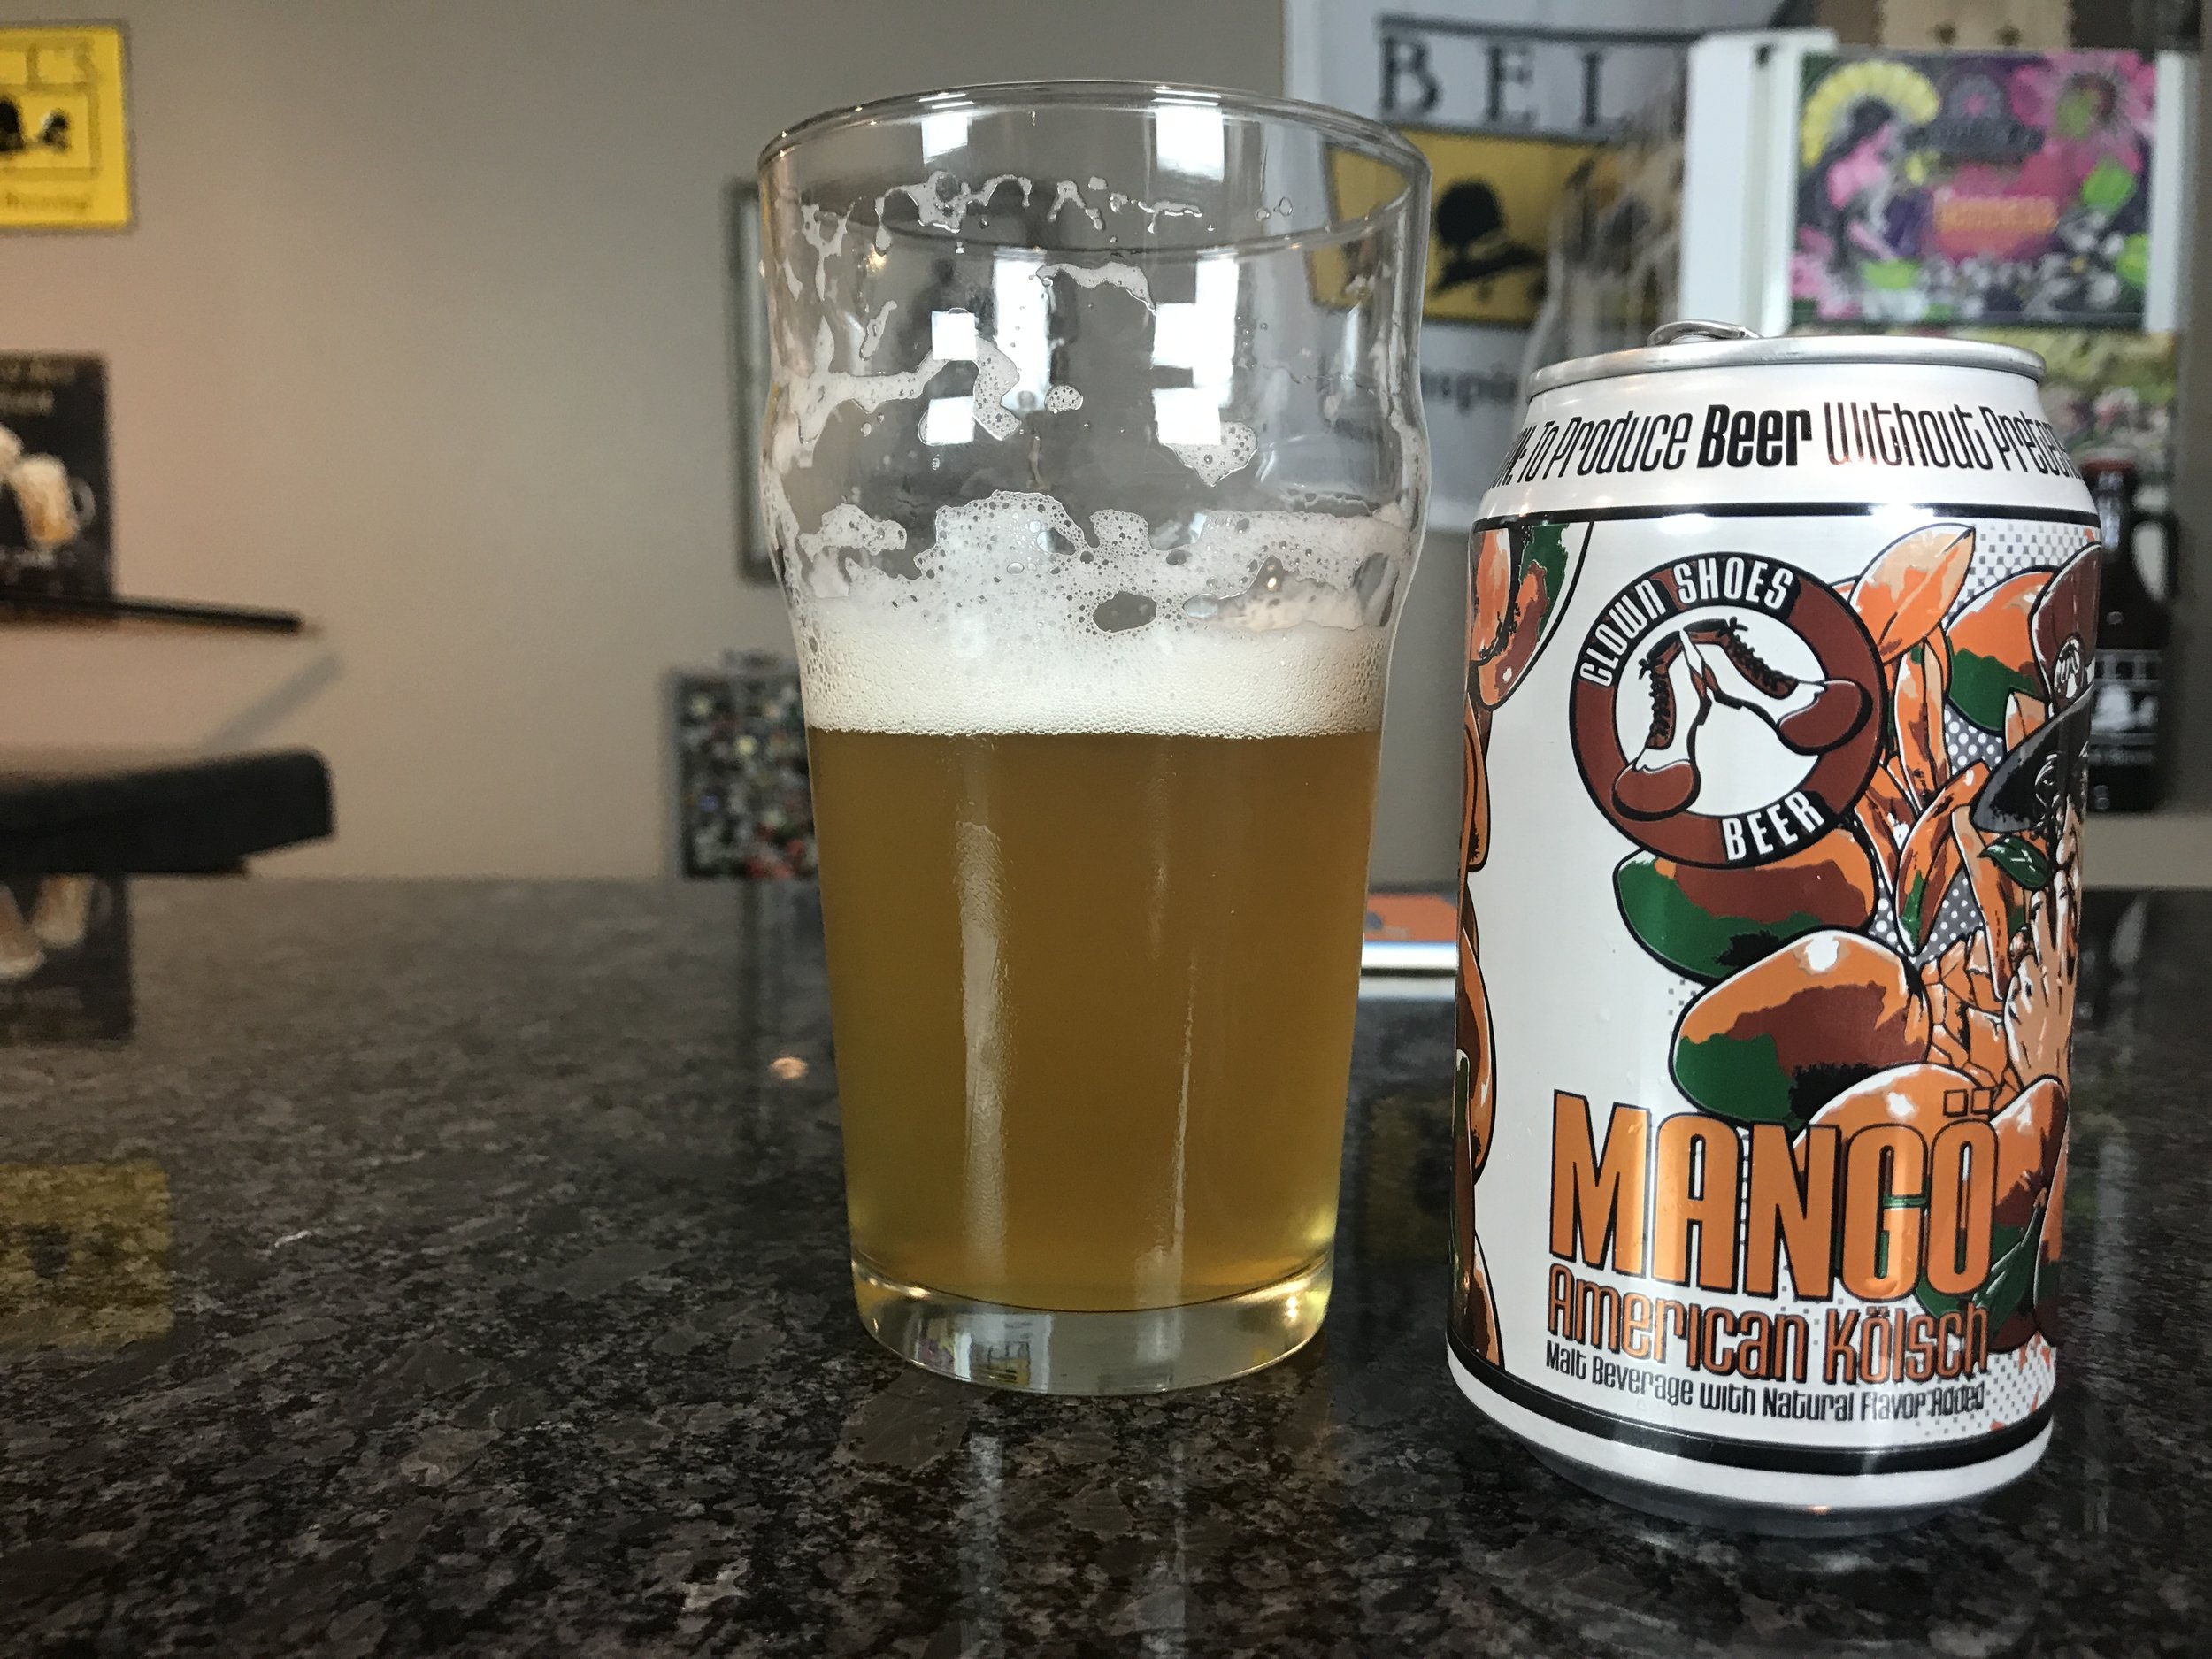 Mango American Kolsh 6% ABV - Want to see the Video review? Click on the image.